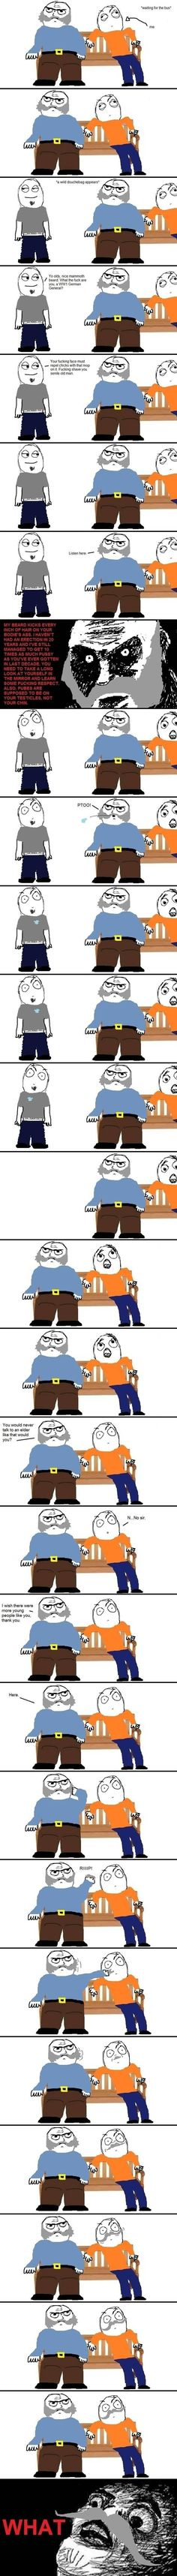 Here ! Funny Images, Funny Photos, Best Funny Pictures, Random Pictures, Rage Comics, Funny Comics, Derp Comics, Rage Faces, One Does Not Simply